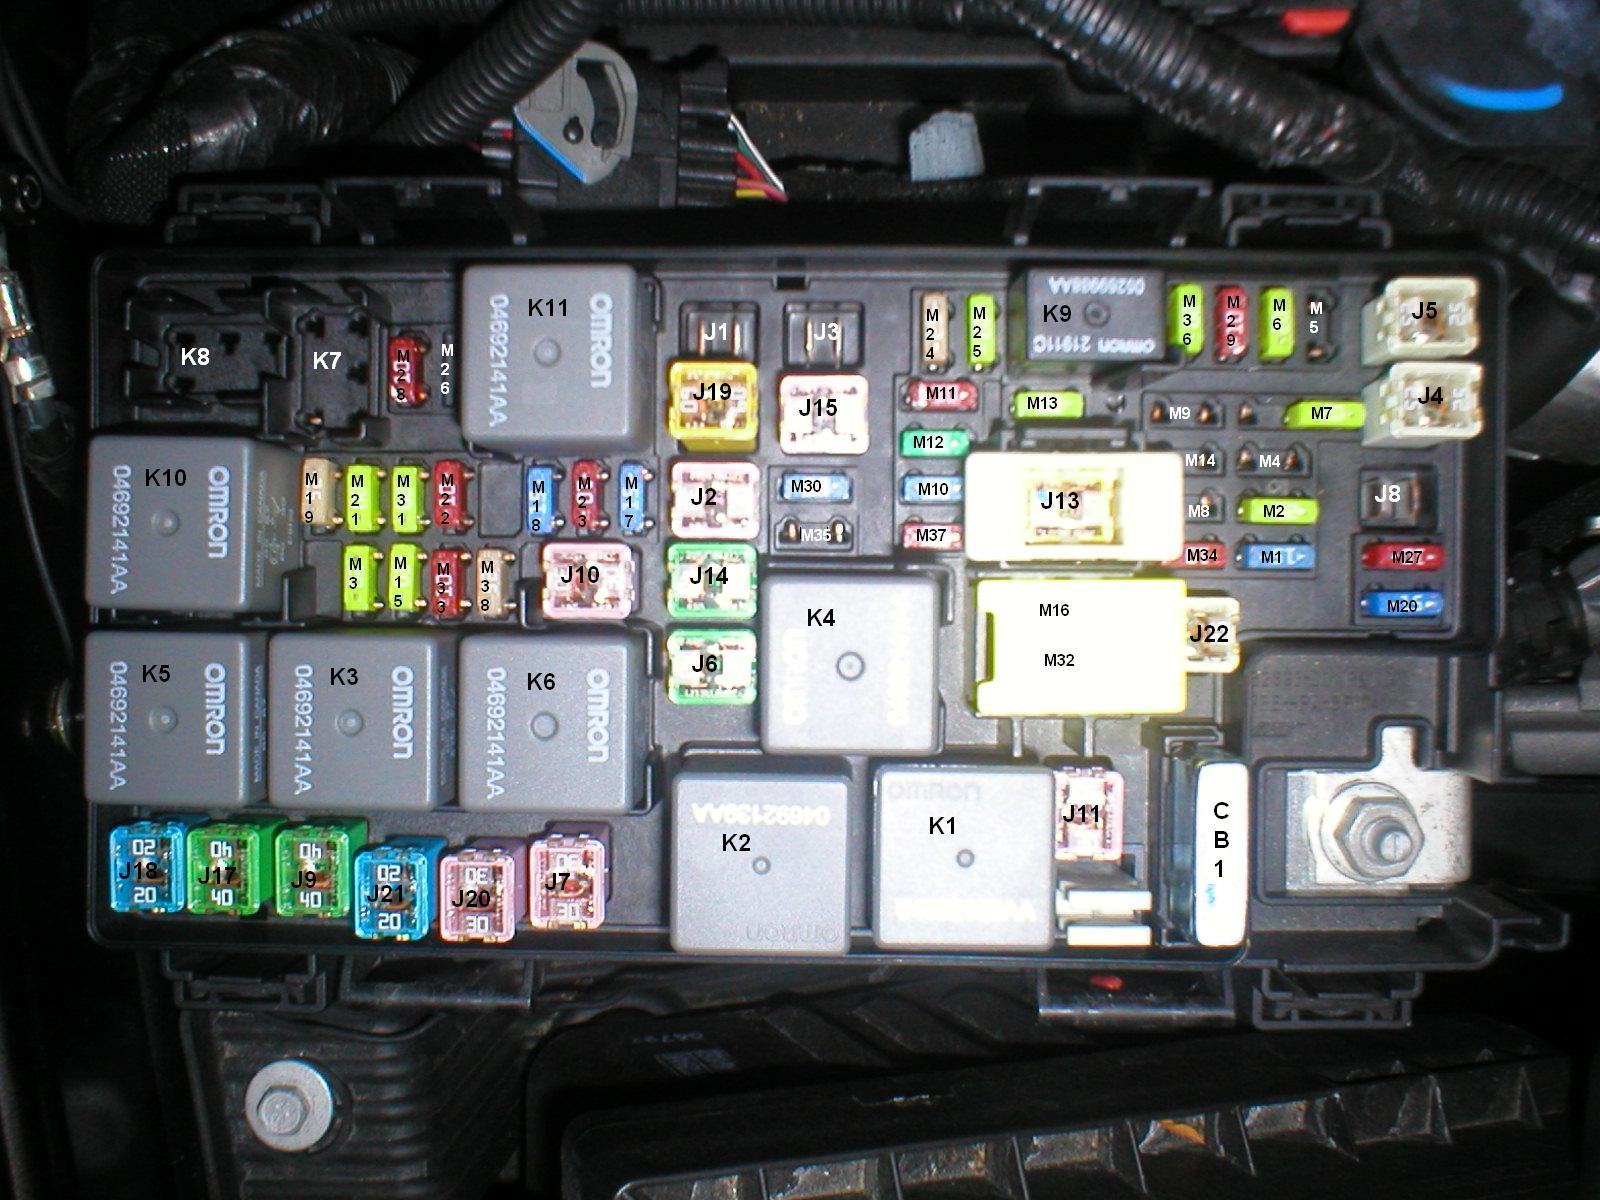 hight resolution of jeep jk fuse box map layout diagram jeepforum com jeep cruise control switch jeep fuse box